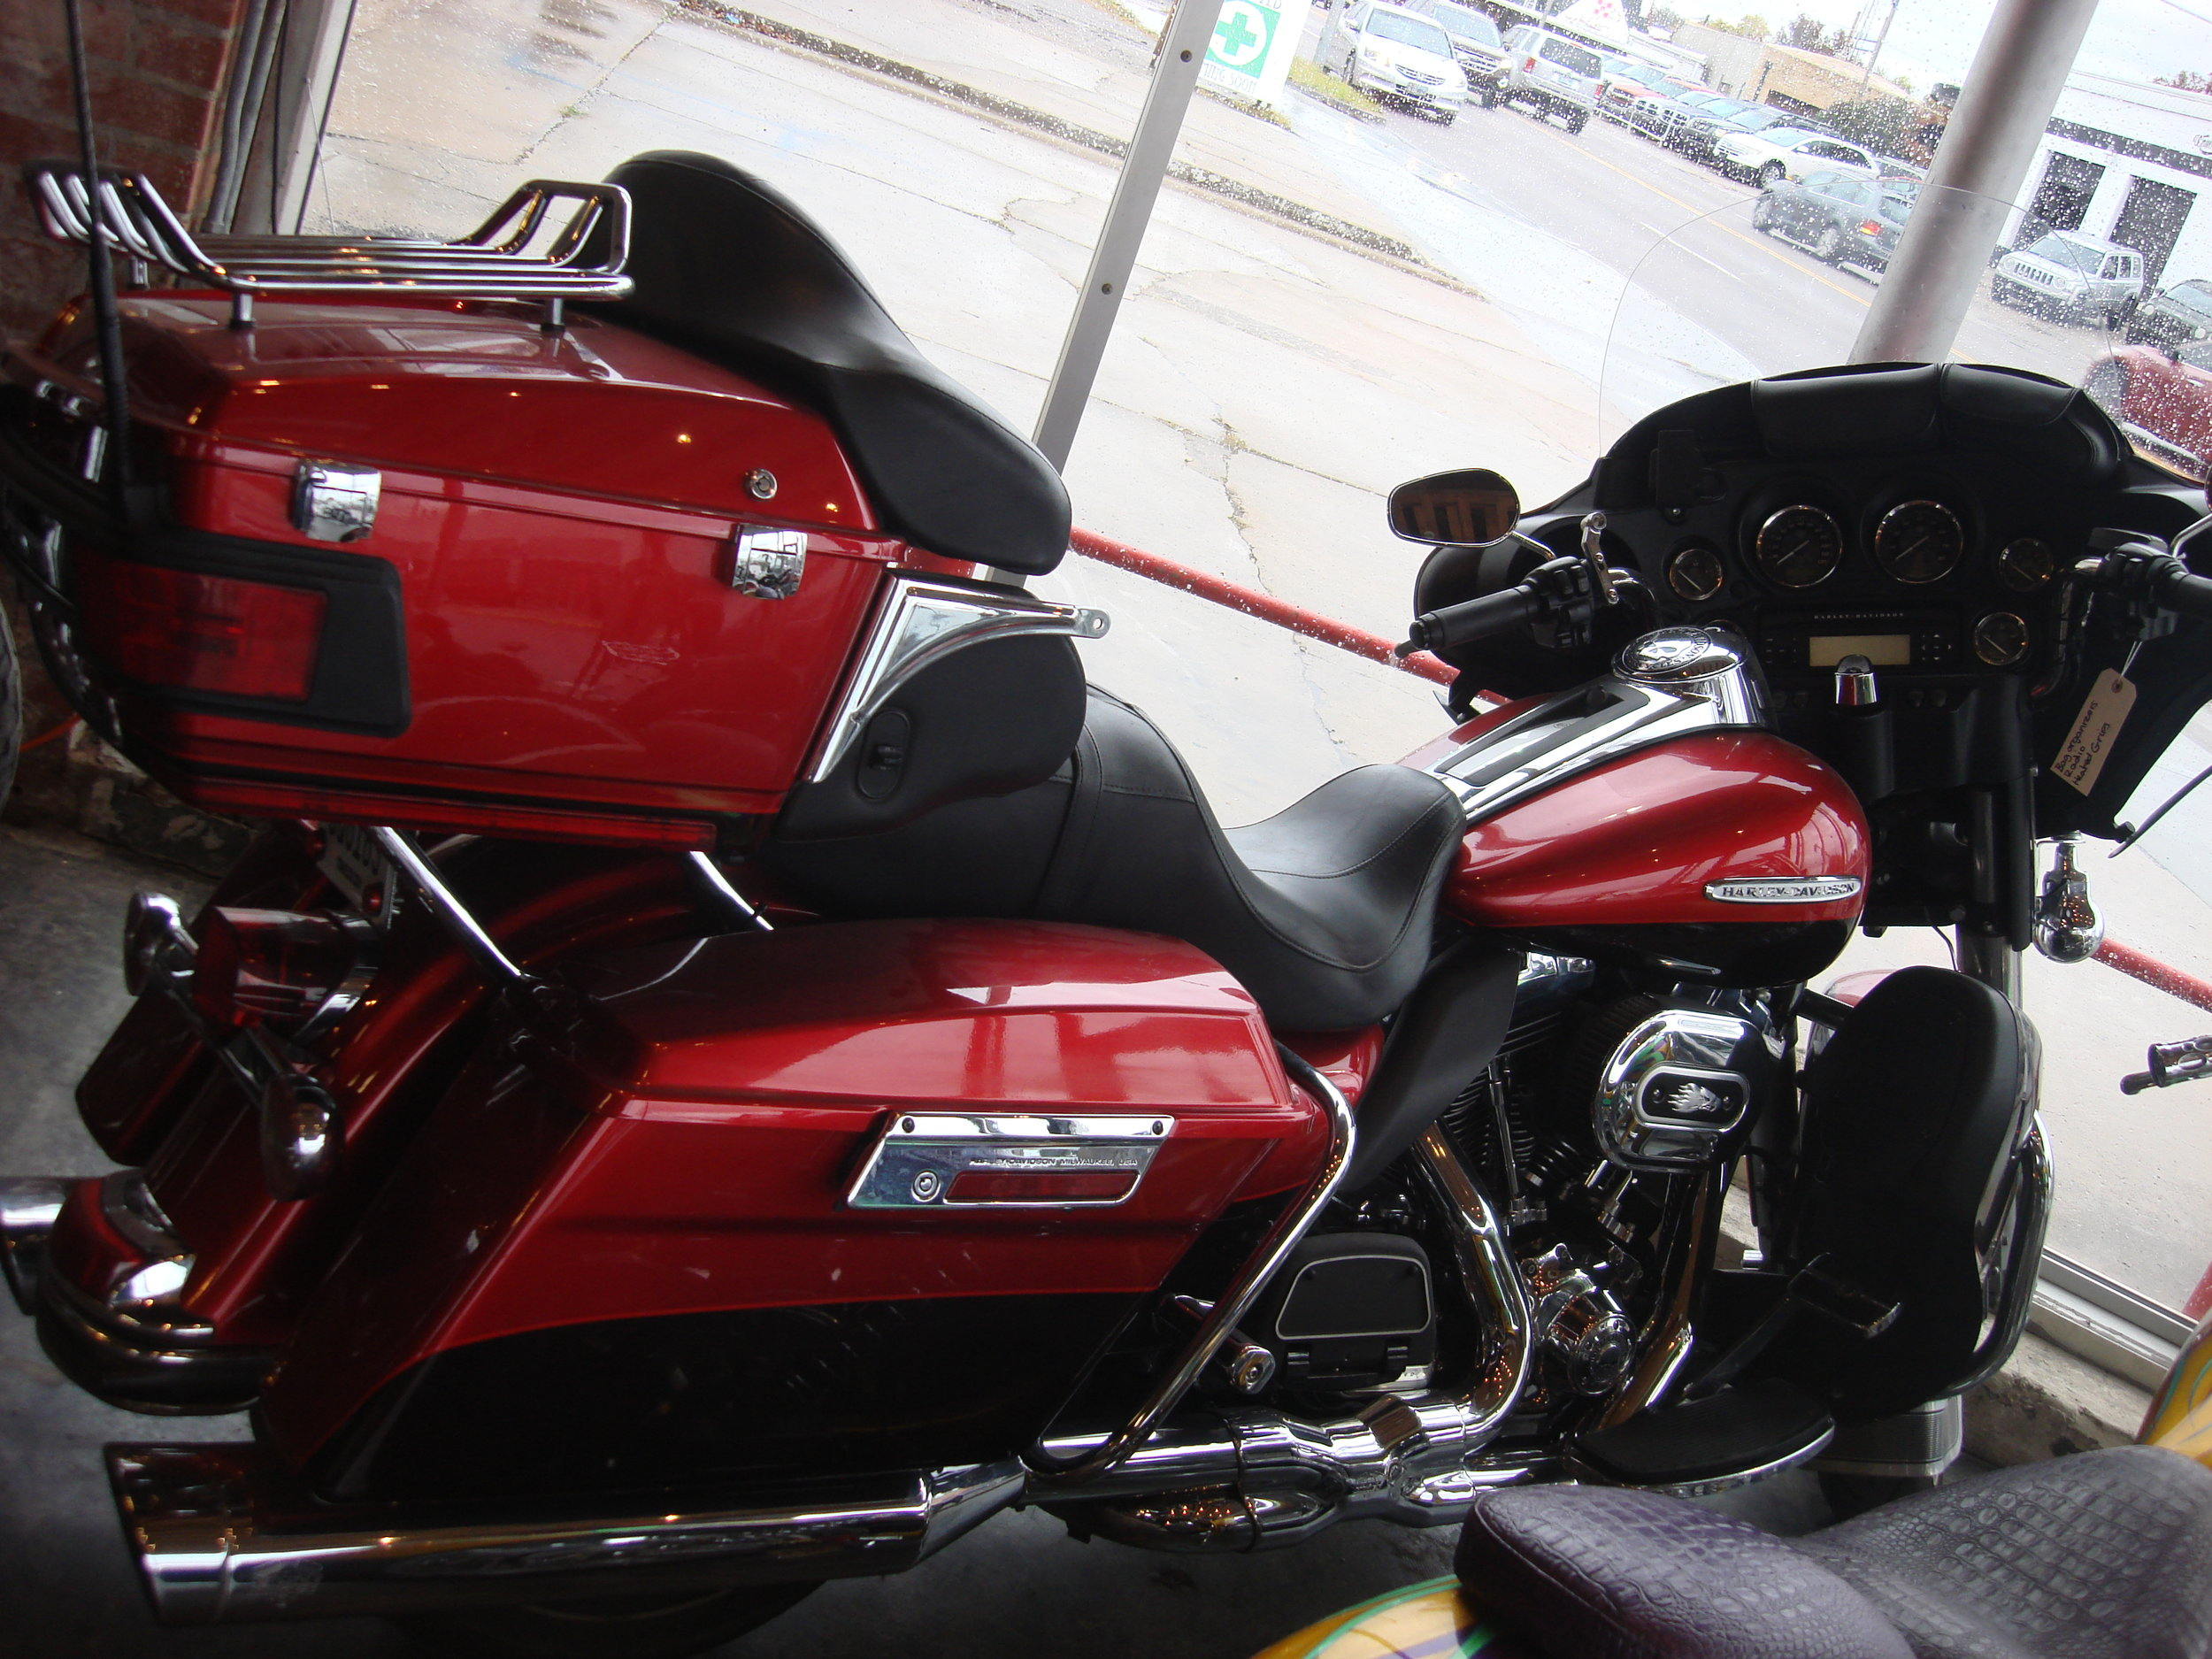 2012 Harley Ultra Classic loaded, $13,500 fully loaded with bag organizers, radio & heated grips. 30k miles  NEW LOWER PRICE $11,500